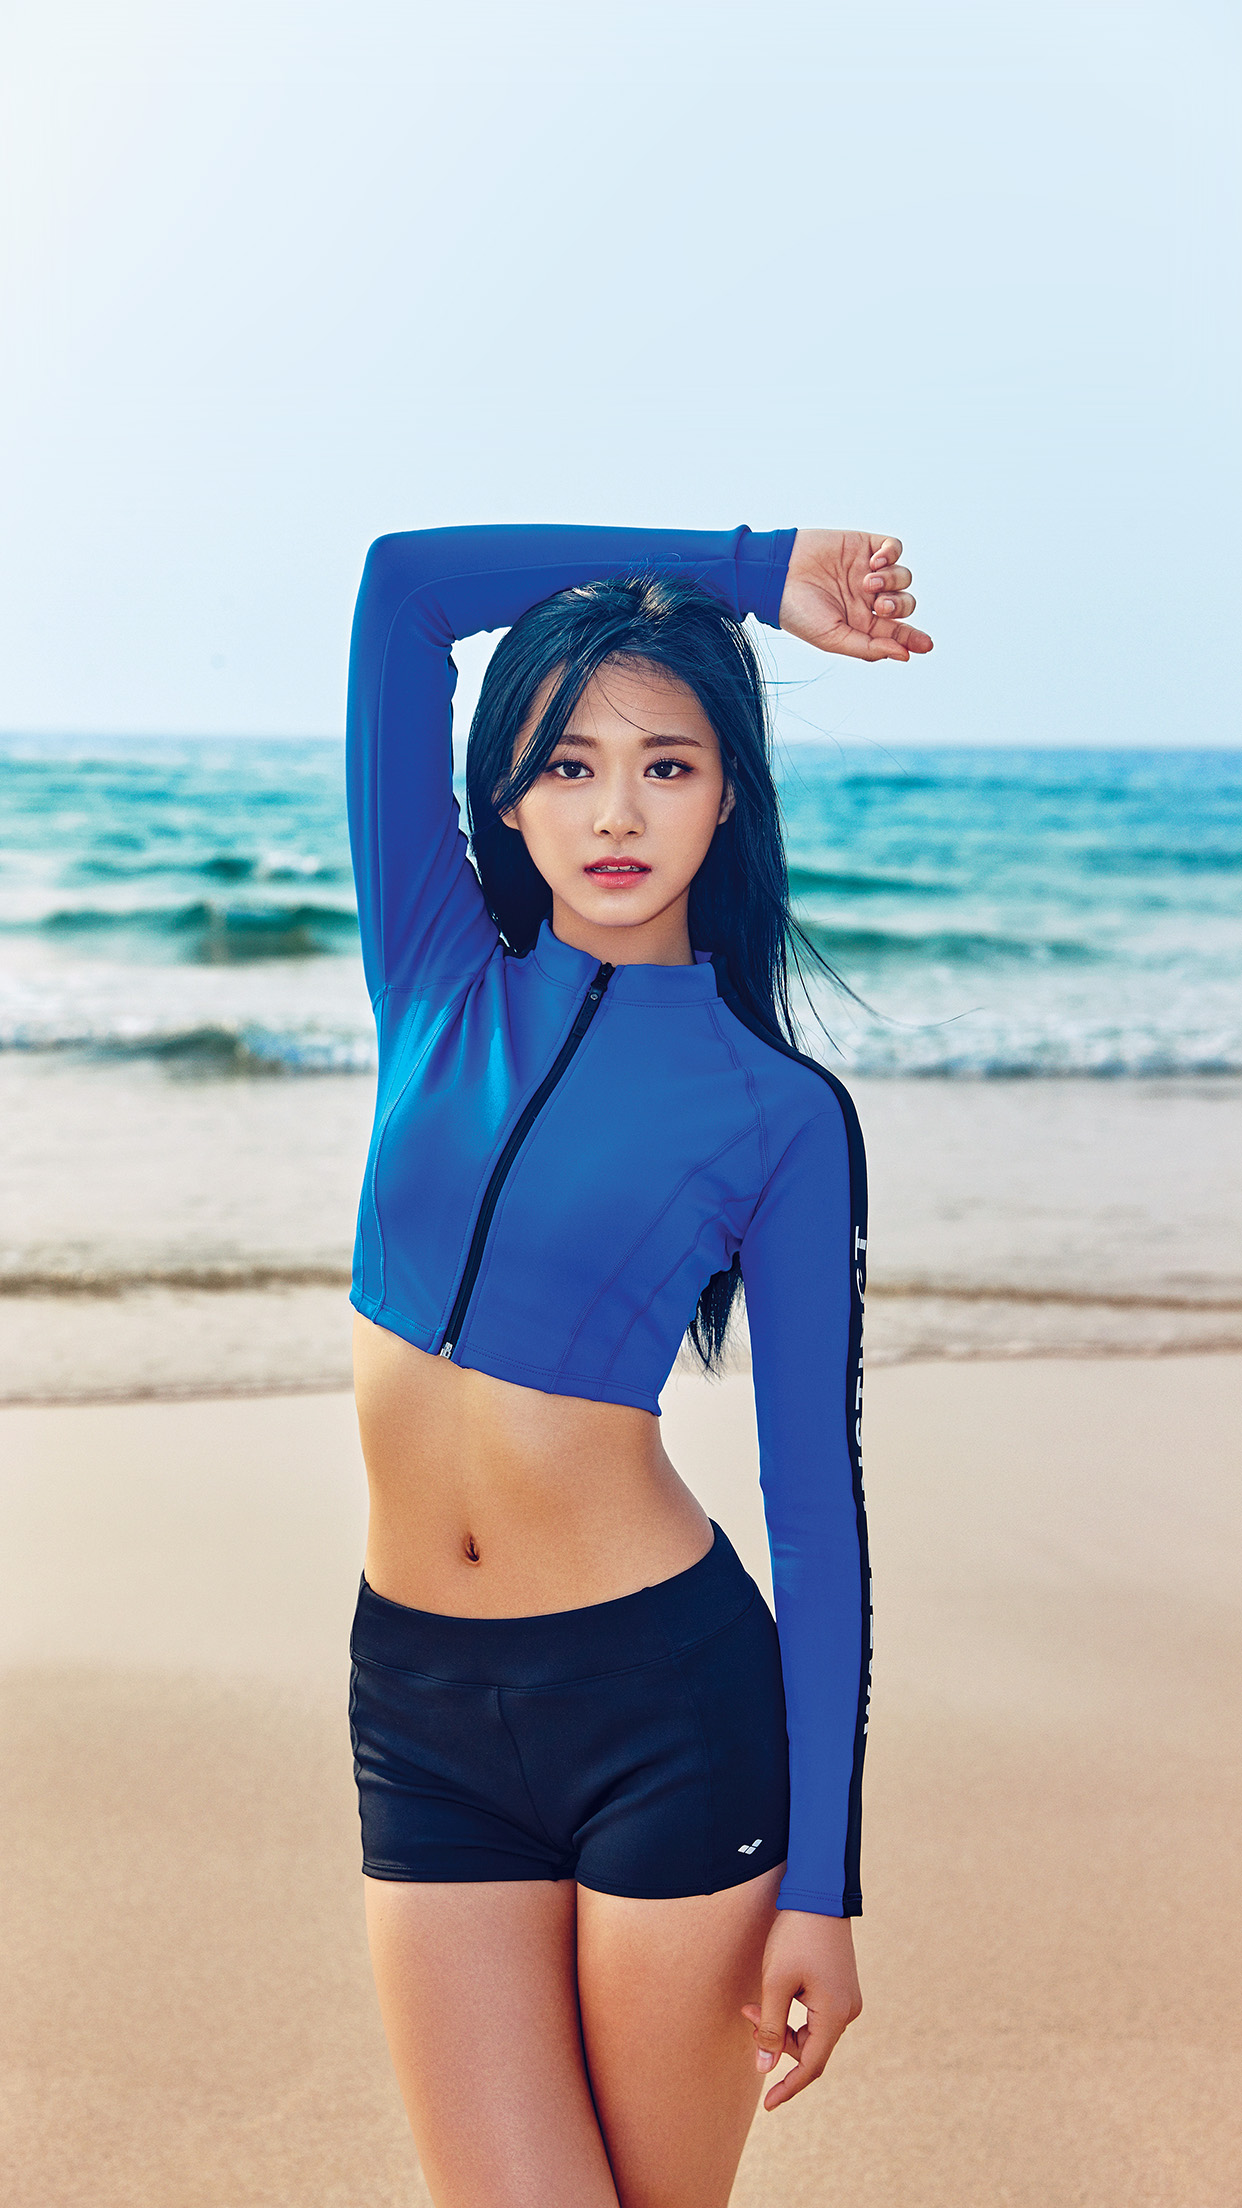 tzuyu kpop girl sea summer cool android wallpaper android hd wallpapers